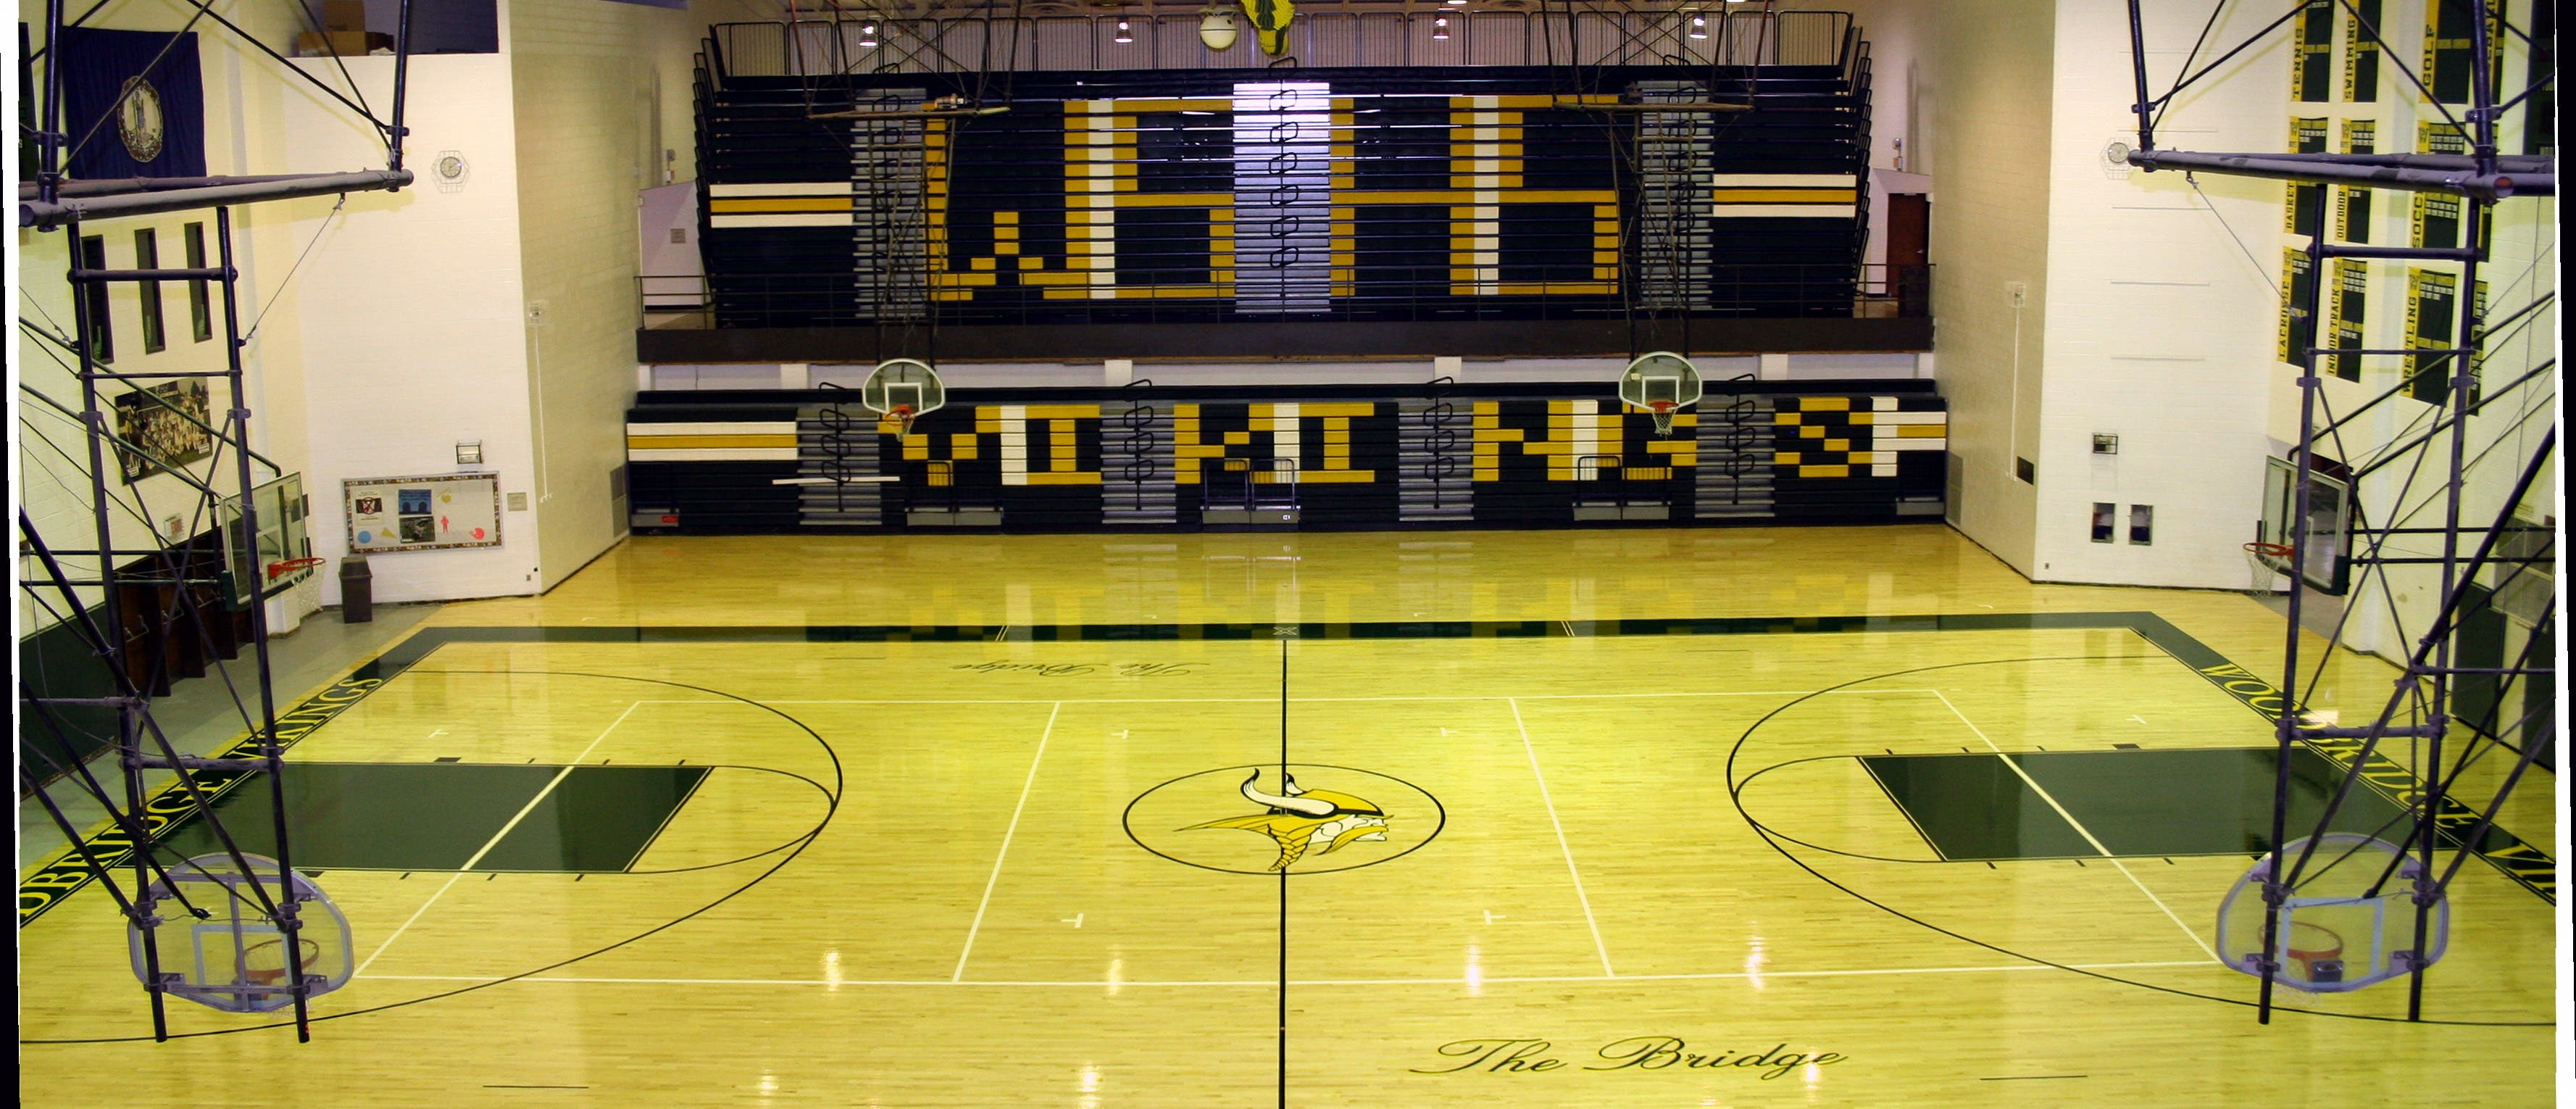 New Gym At Wshs Brings More Opportunities For Students Woodbridge Va Patch